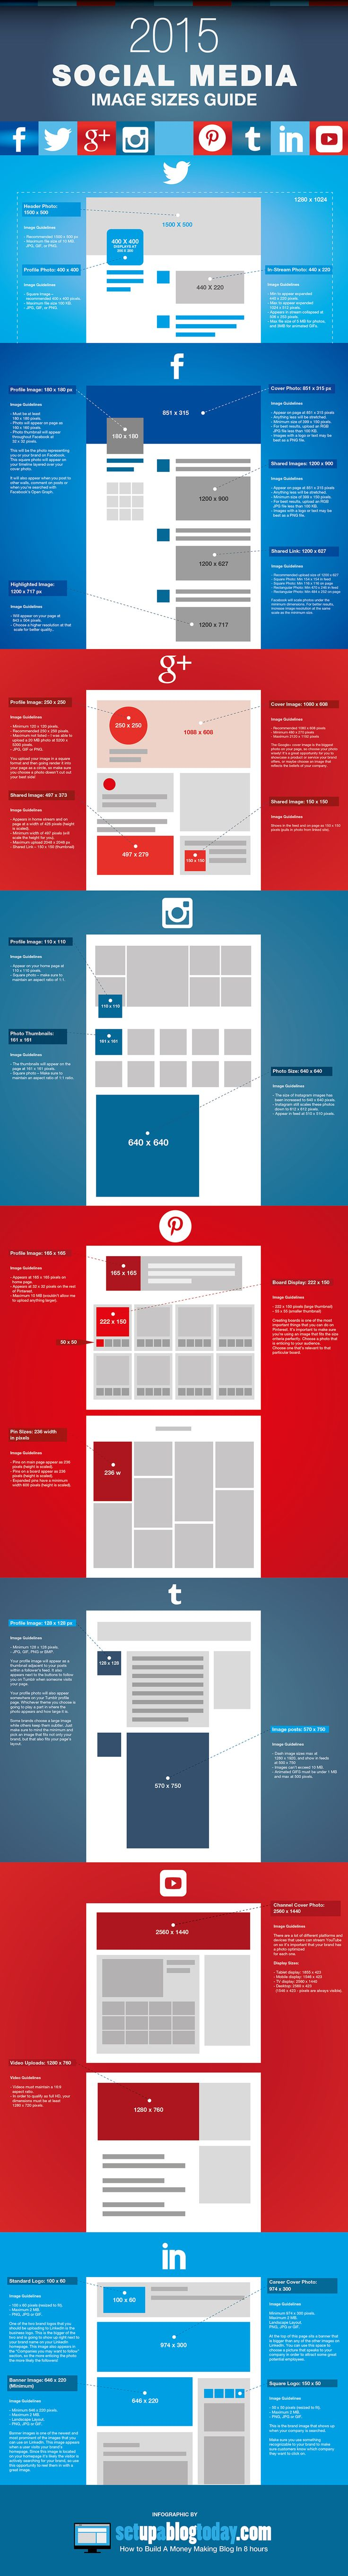 2015 #SocialMedia Image Sizes Guide via @makeuseof HT SetUpABlogToday